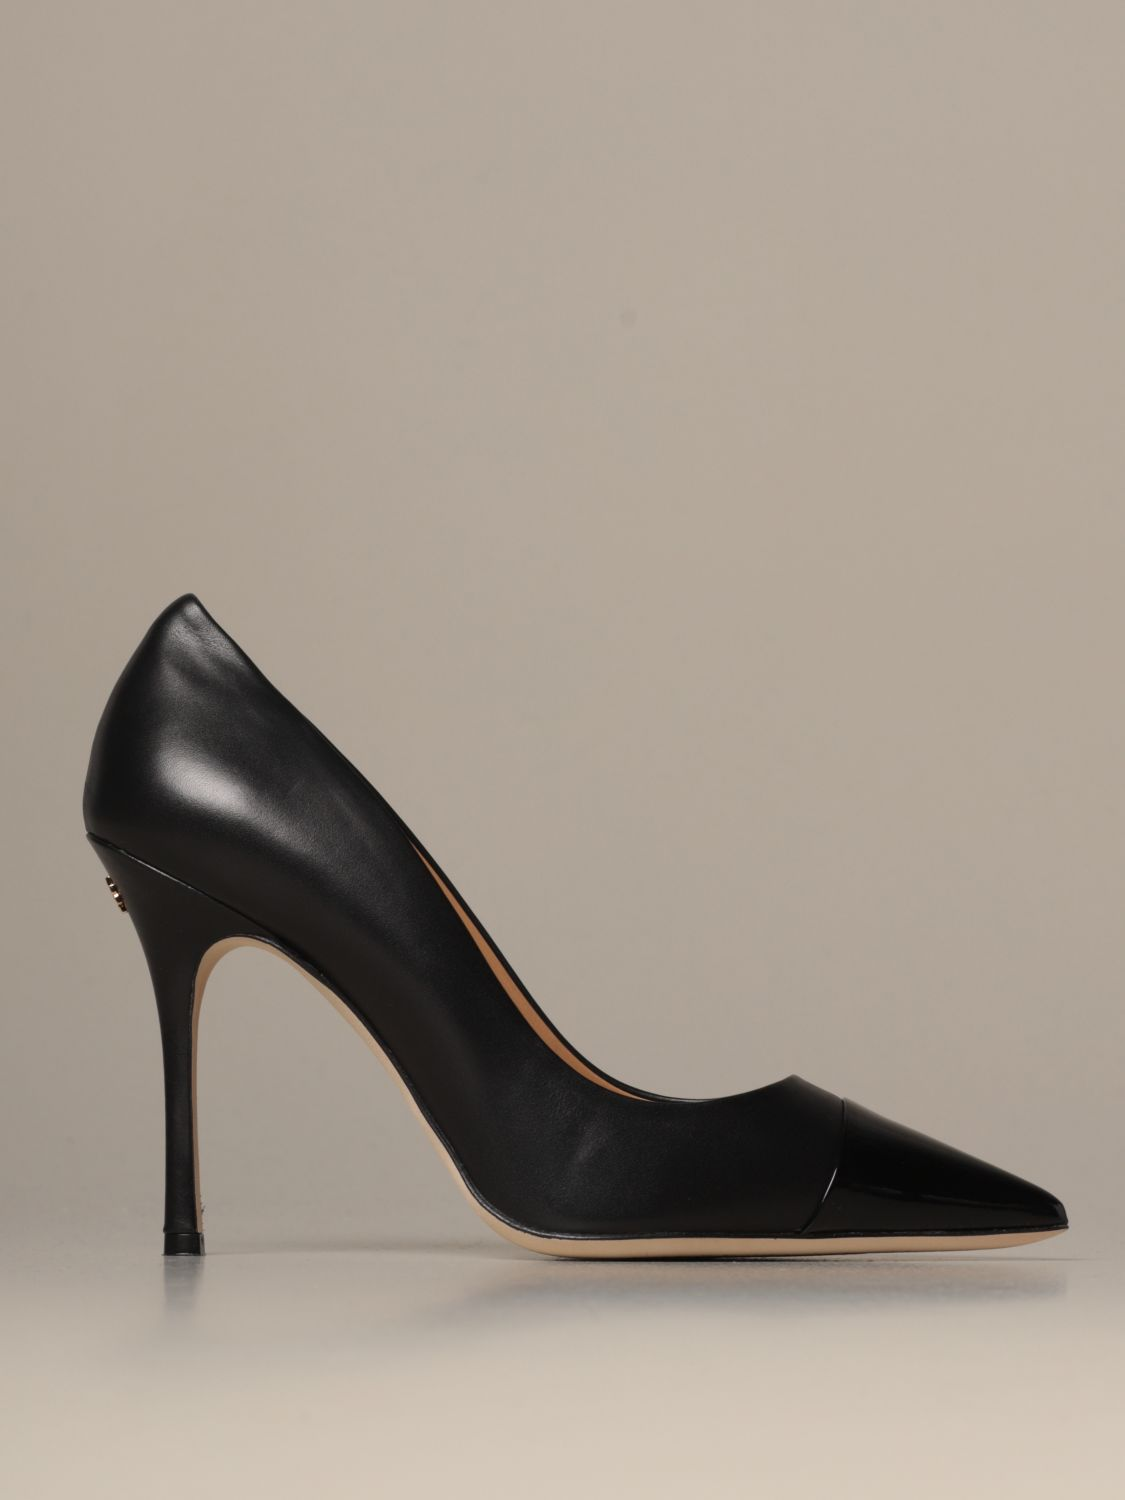 tory burch court shoes